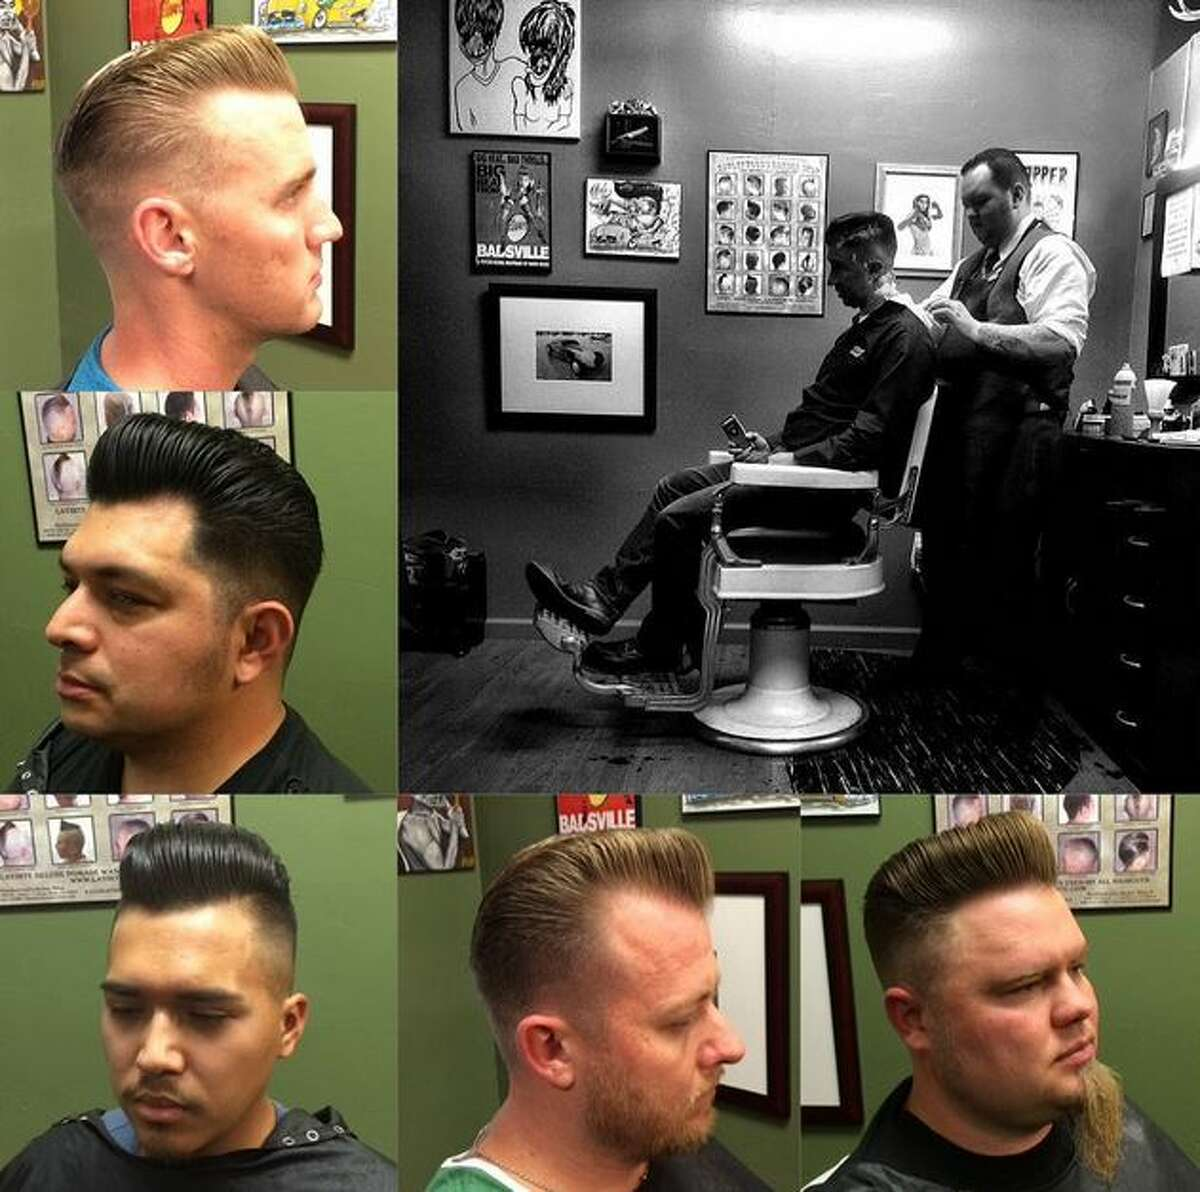 Chris Zepeda Specialties: traditional haircuts, especially the pompadour Experience: 11 years Find him at: Clippers Barber Shop 6991 Blanco Rd., 78216